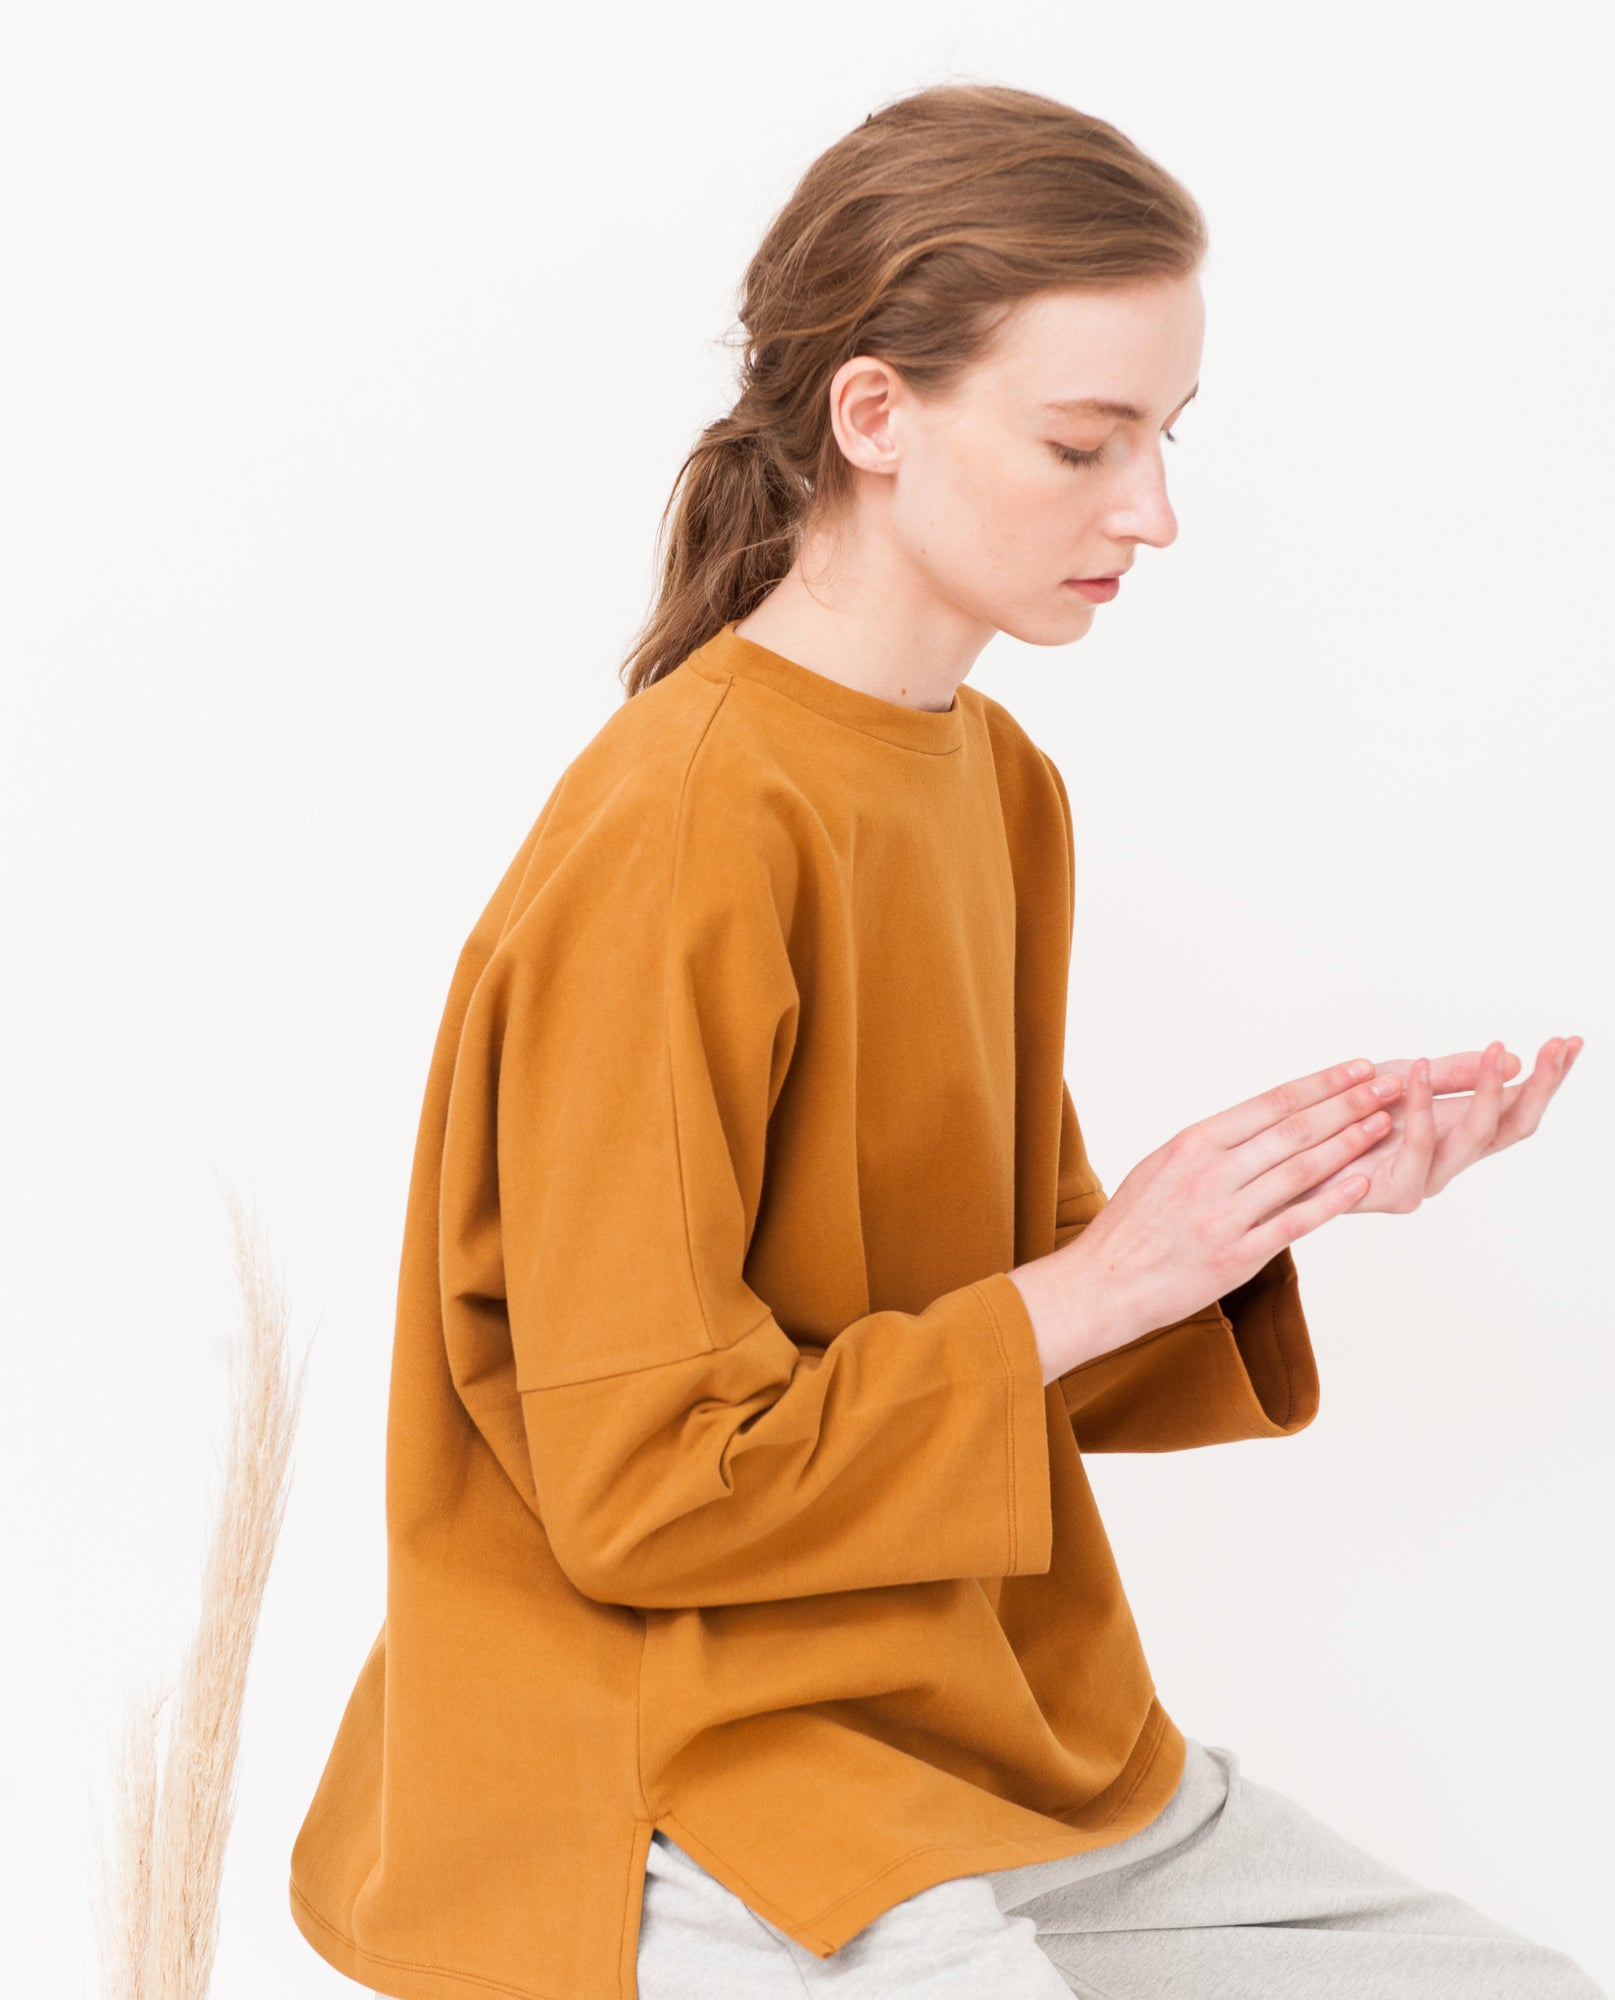 SOMA Organic Cotton Top In Rust from Beaumont Organic